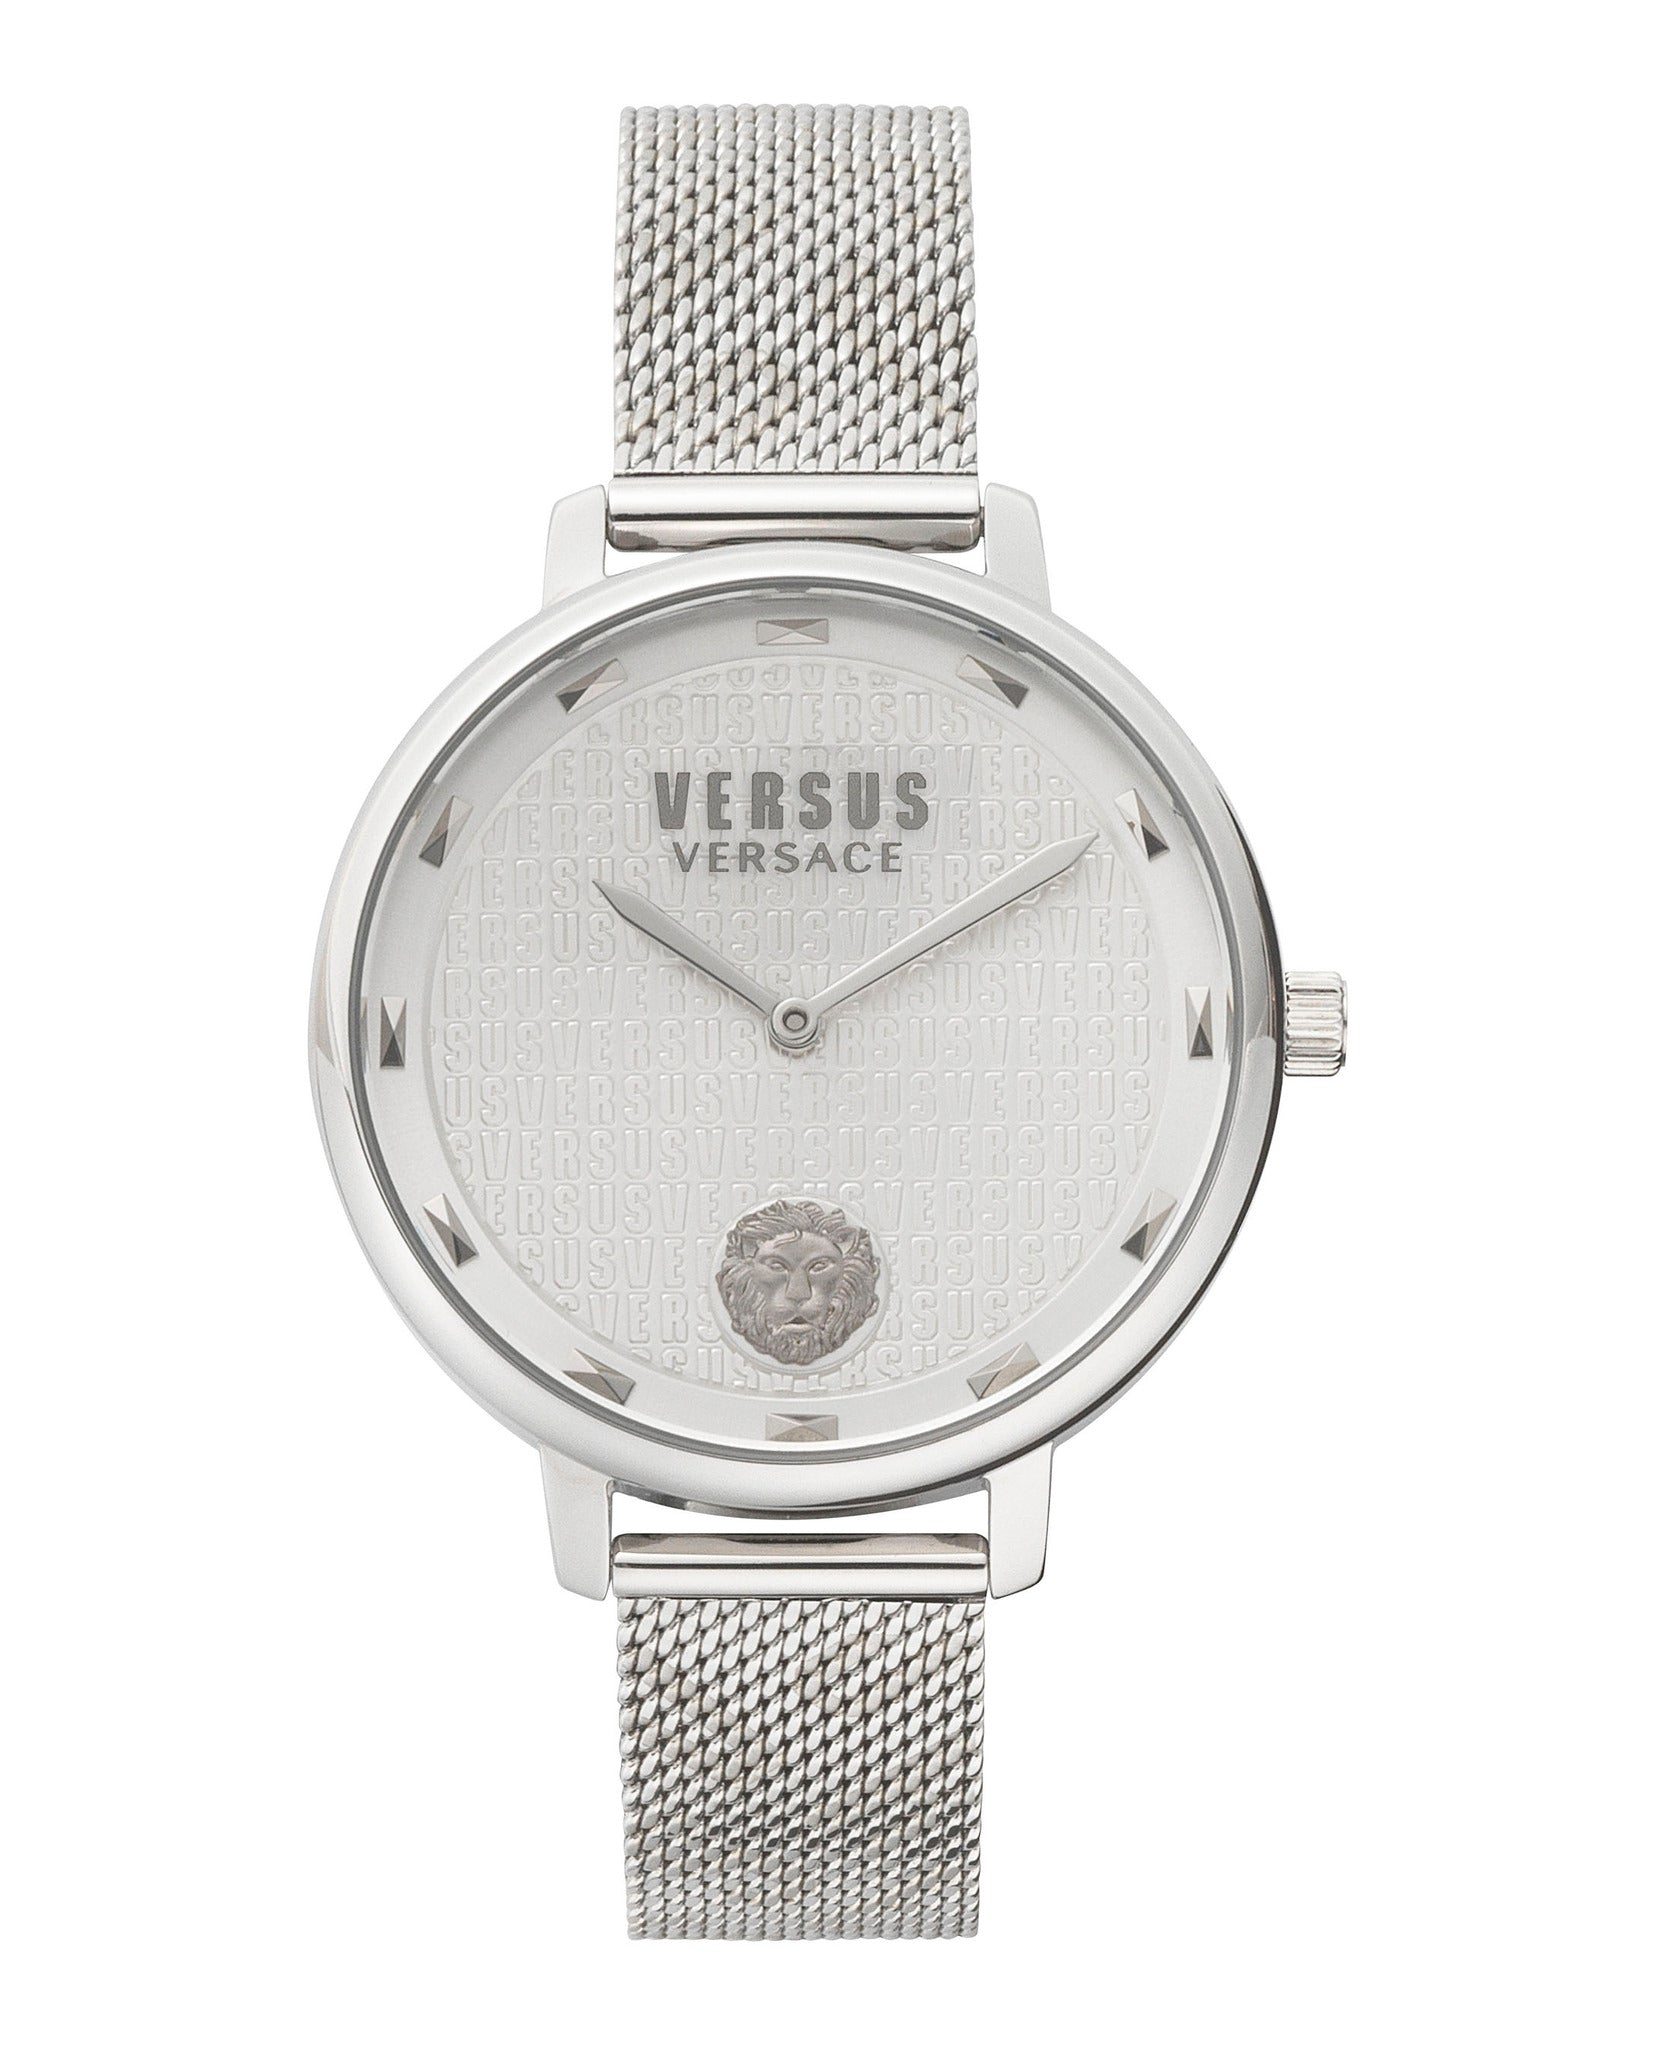 Versus Versace La Villette Watch